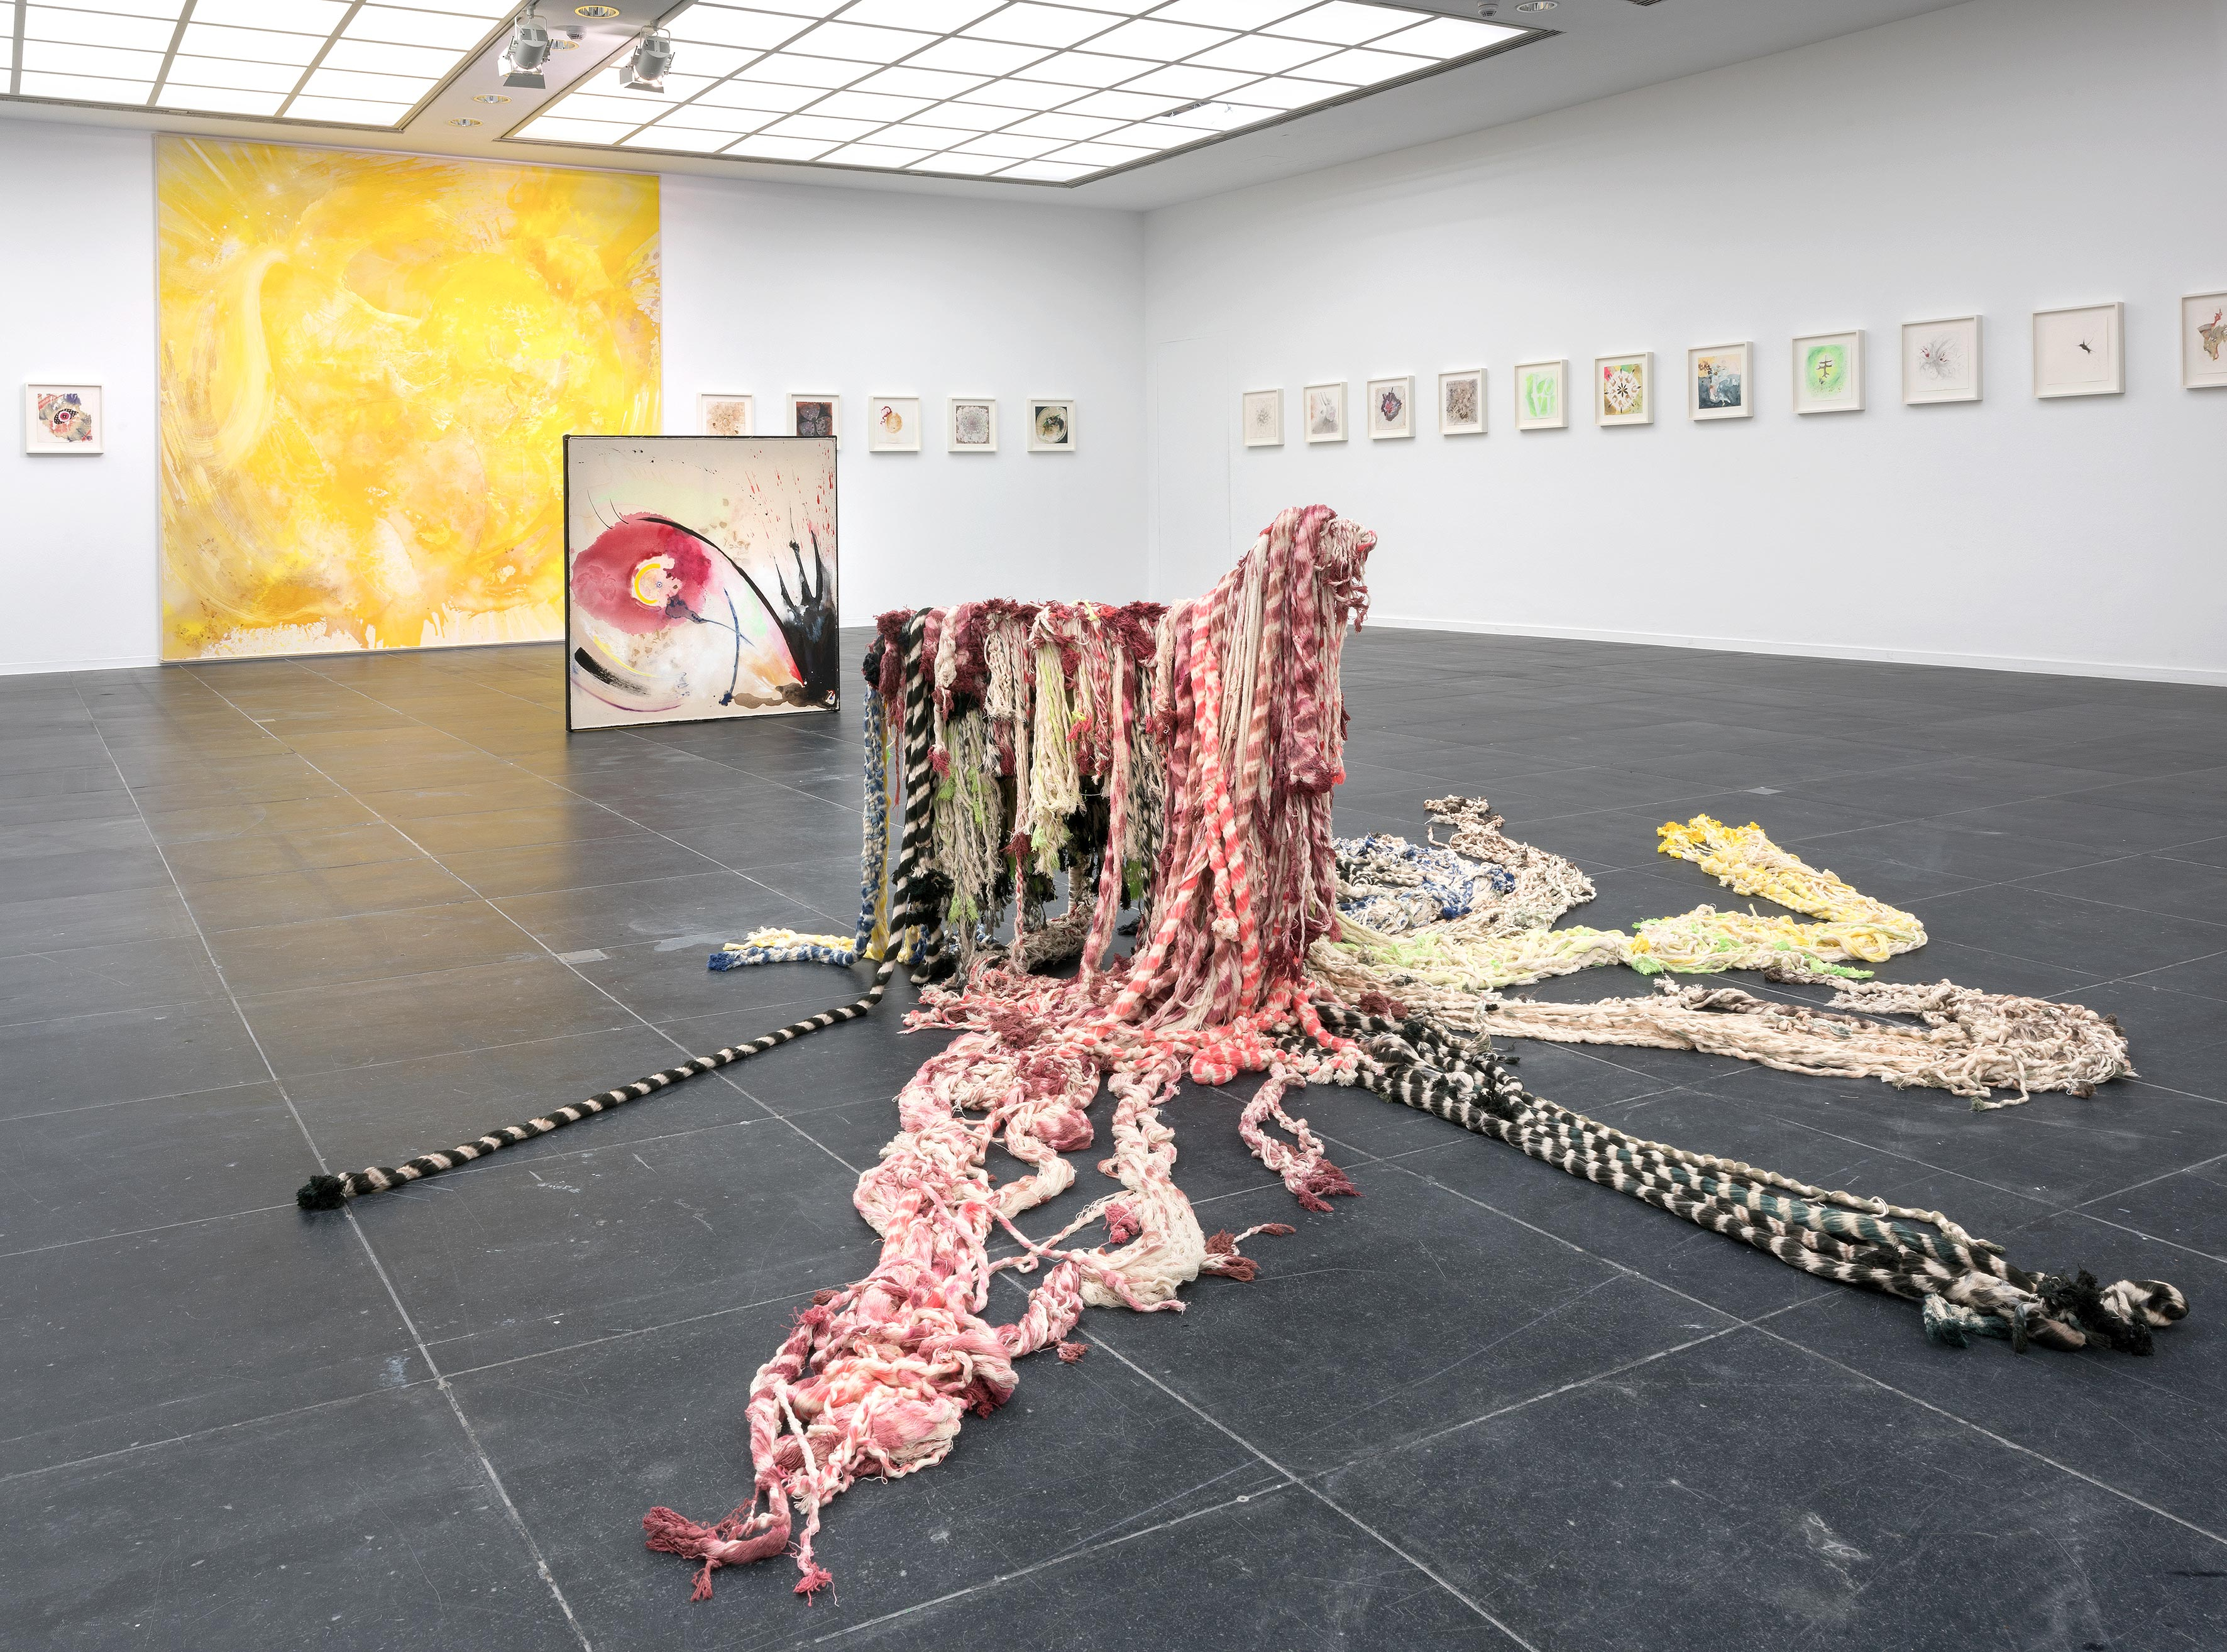 Reconnecting with the World: About the Poetic in Elements and Materials - Frankfurter Kunstverein